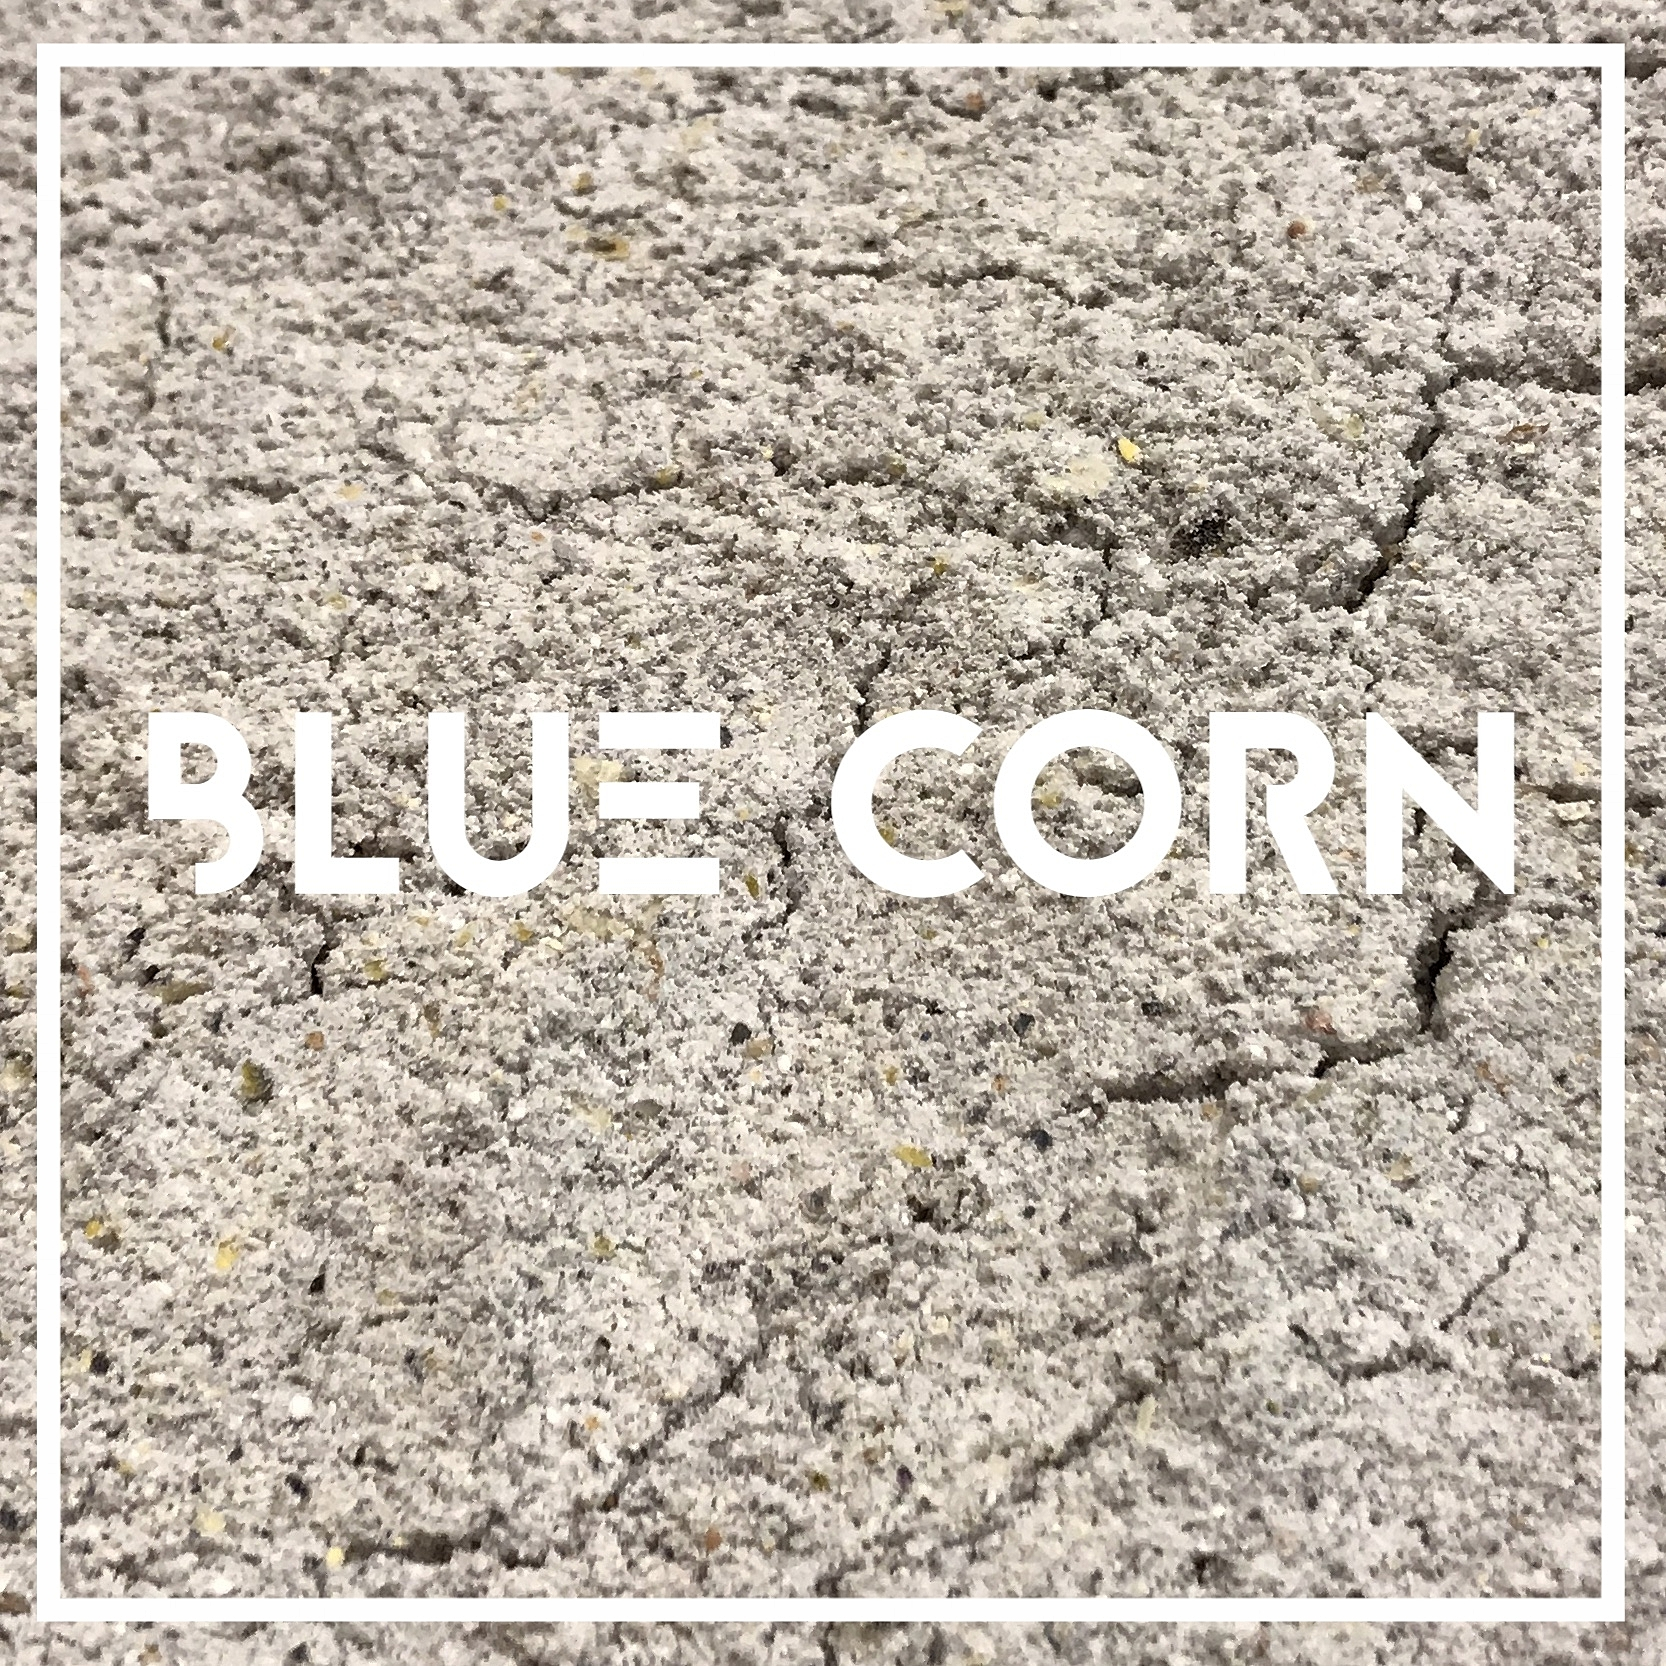 Our organic whole grain blue corn is grown by Dave Dolan in Dodgeville WI. It is milled at  Lonesome Stone Mill , in Lone Rock WI.   Used in: Windy Point, 1776   Blue Corn is one of America's most ancient grains. Long cultivated by the Hopi Indians in what is now Arizona and New Mexico, ours has been adapted to the midwest climate through careful seed-selection. Blue corn has a distinctively dry, mildly sweet flavor.